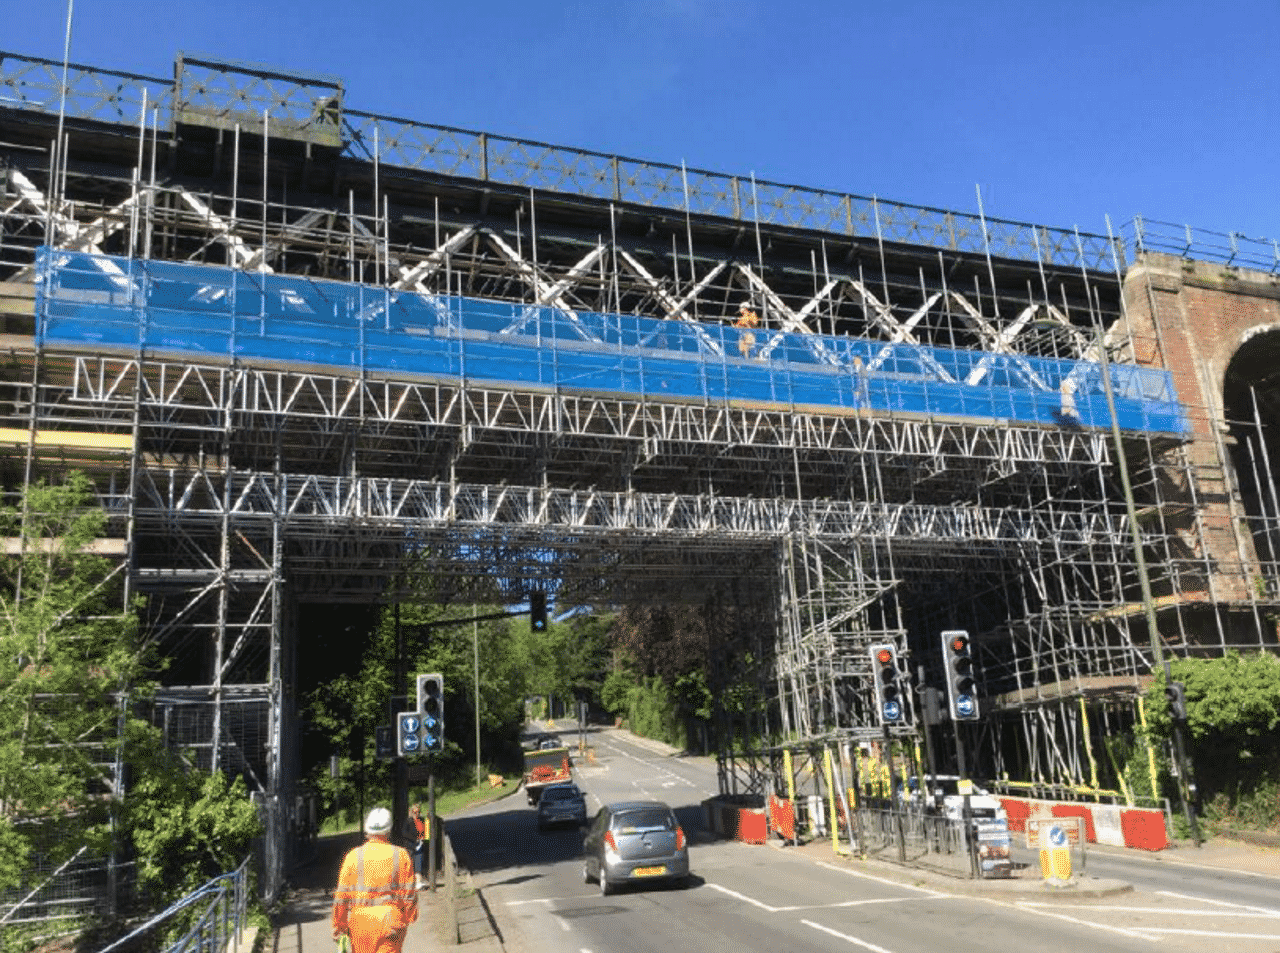 Oxted Viaduct scaffold across A25